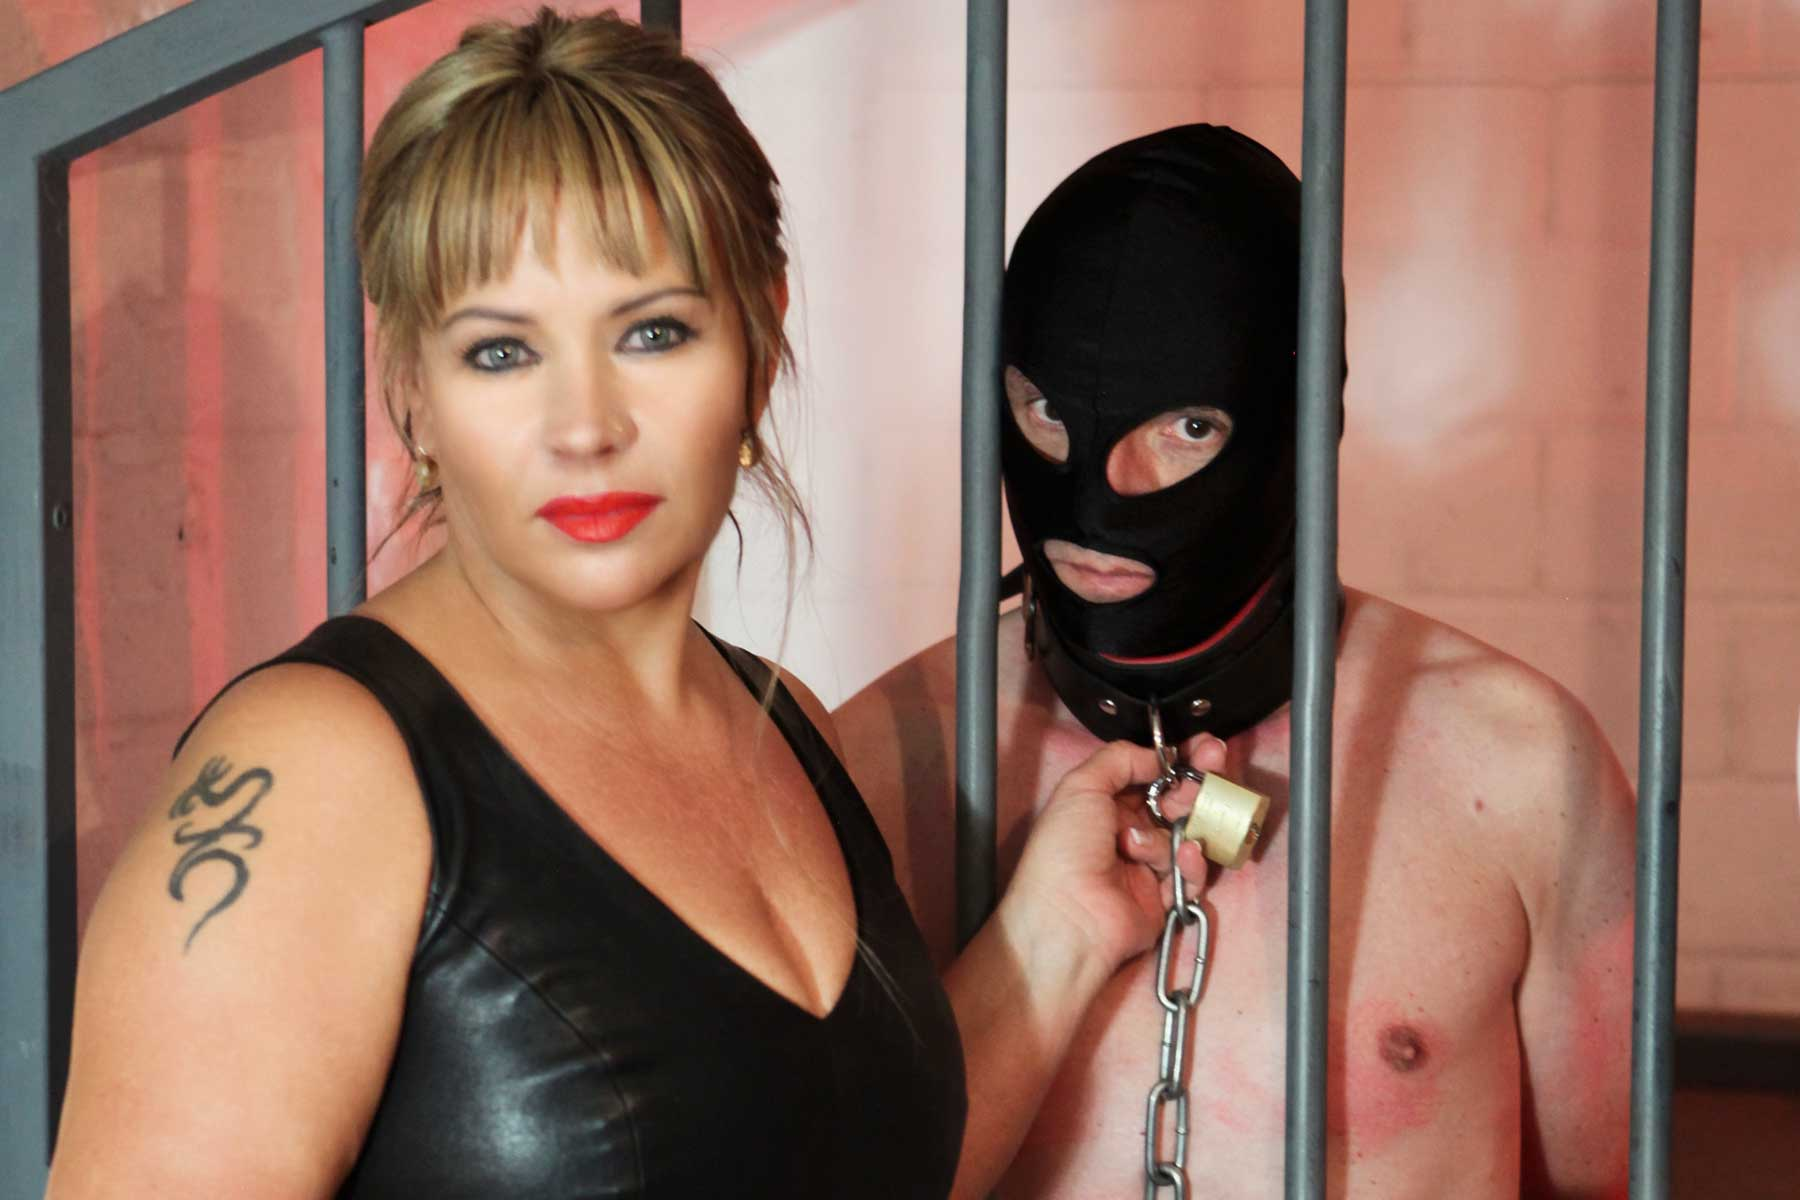 german mistress lady Mercedes is preparing a personal slave for the slave auction in the avalon residenz